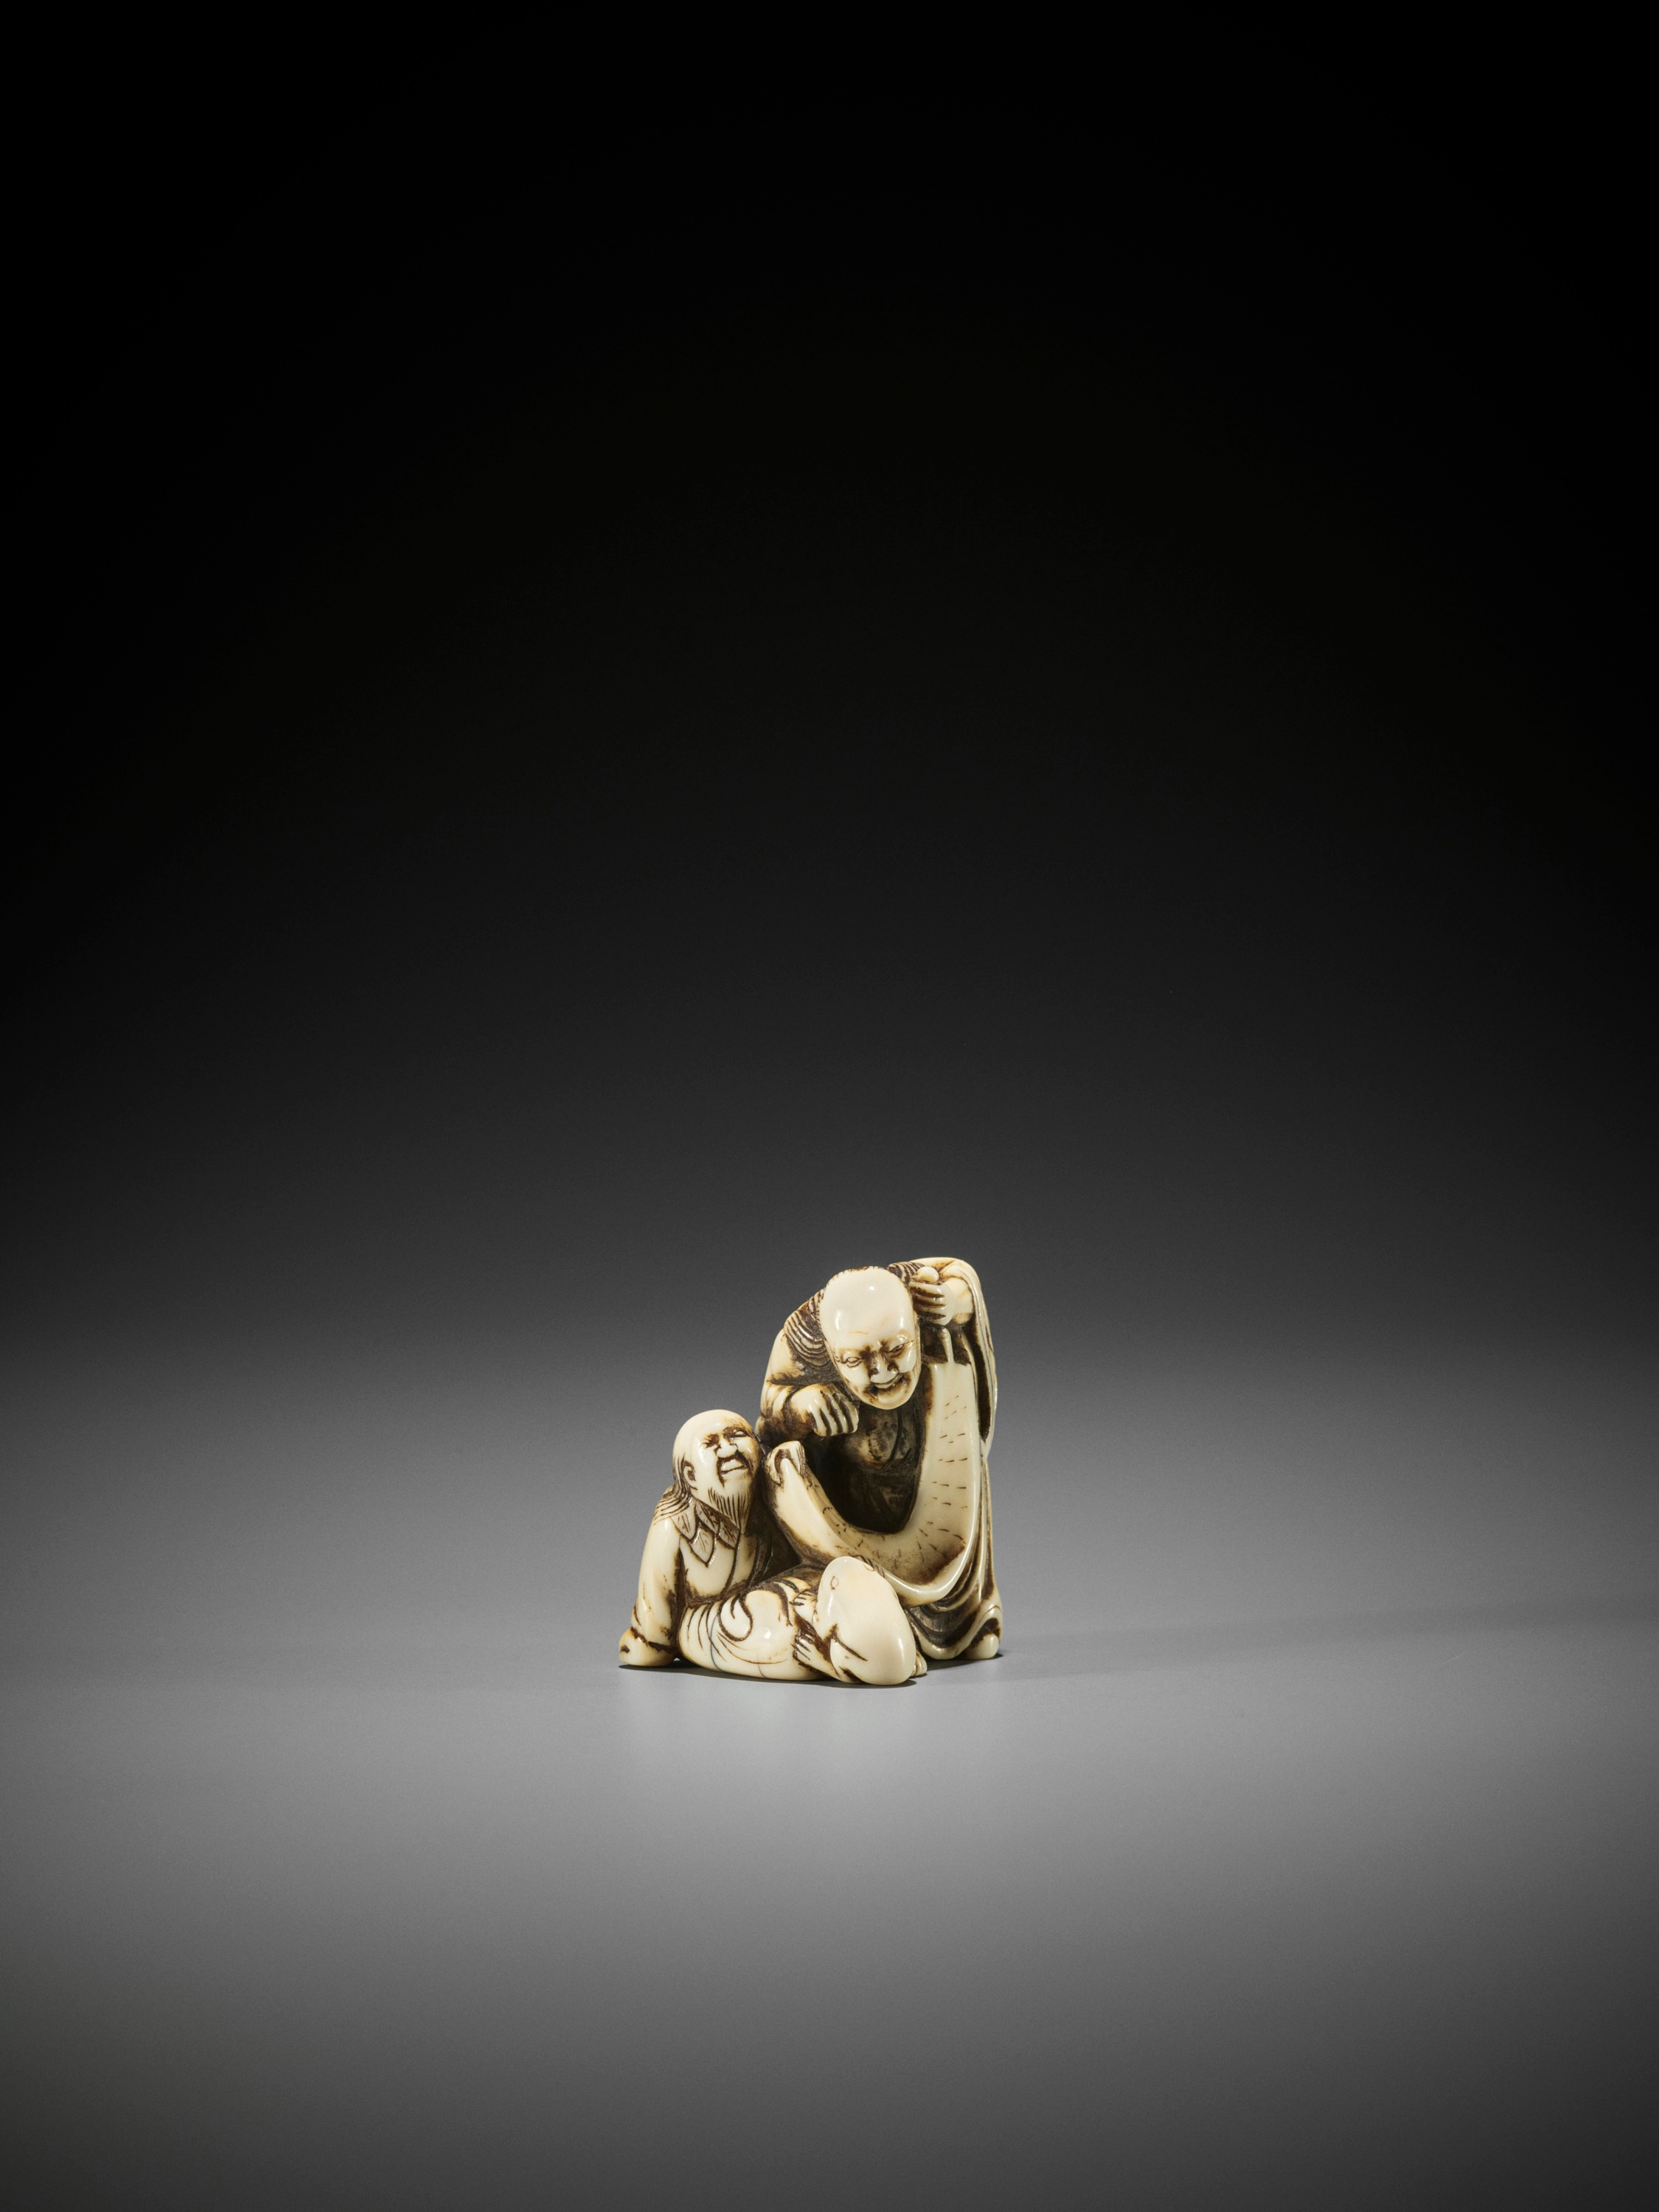 AN EARLY IVORY NETSUKE OF TWO IMMORTALS WITH SCROLL AND TOAD - Image 2 of 3